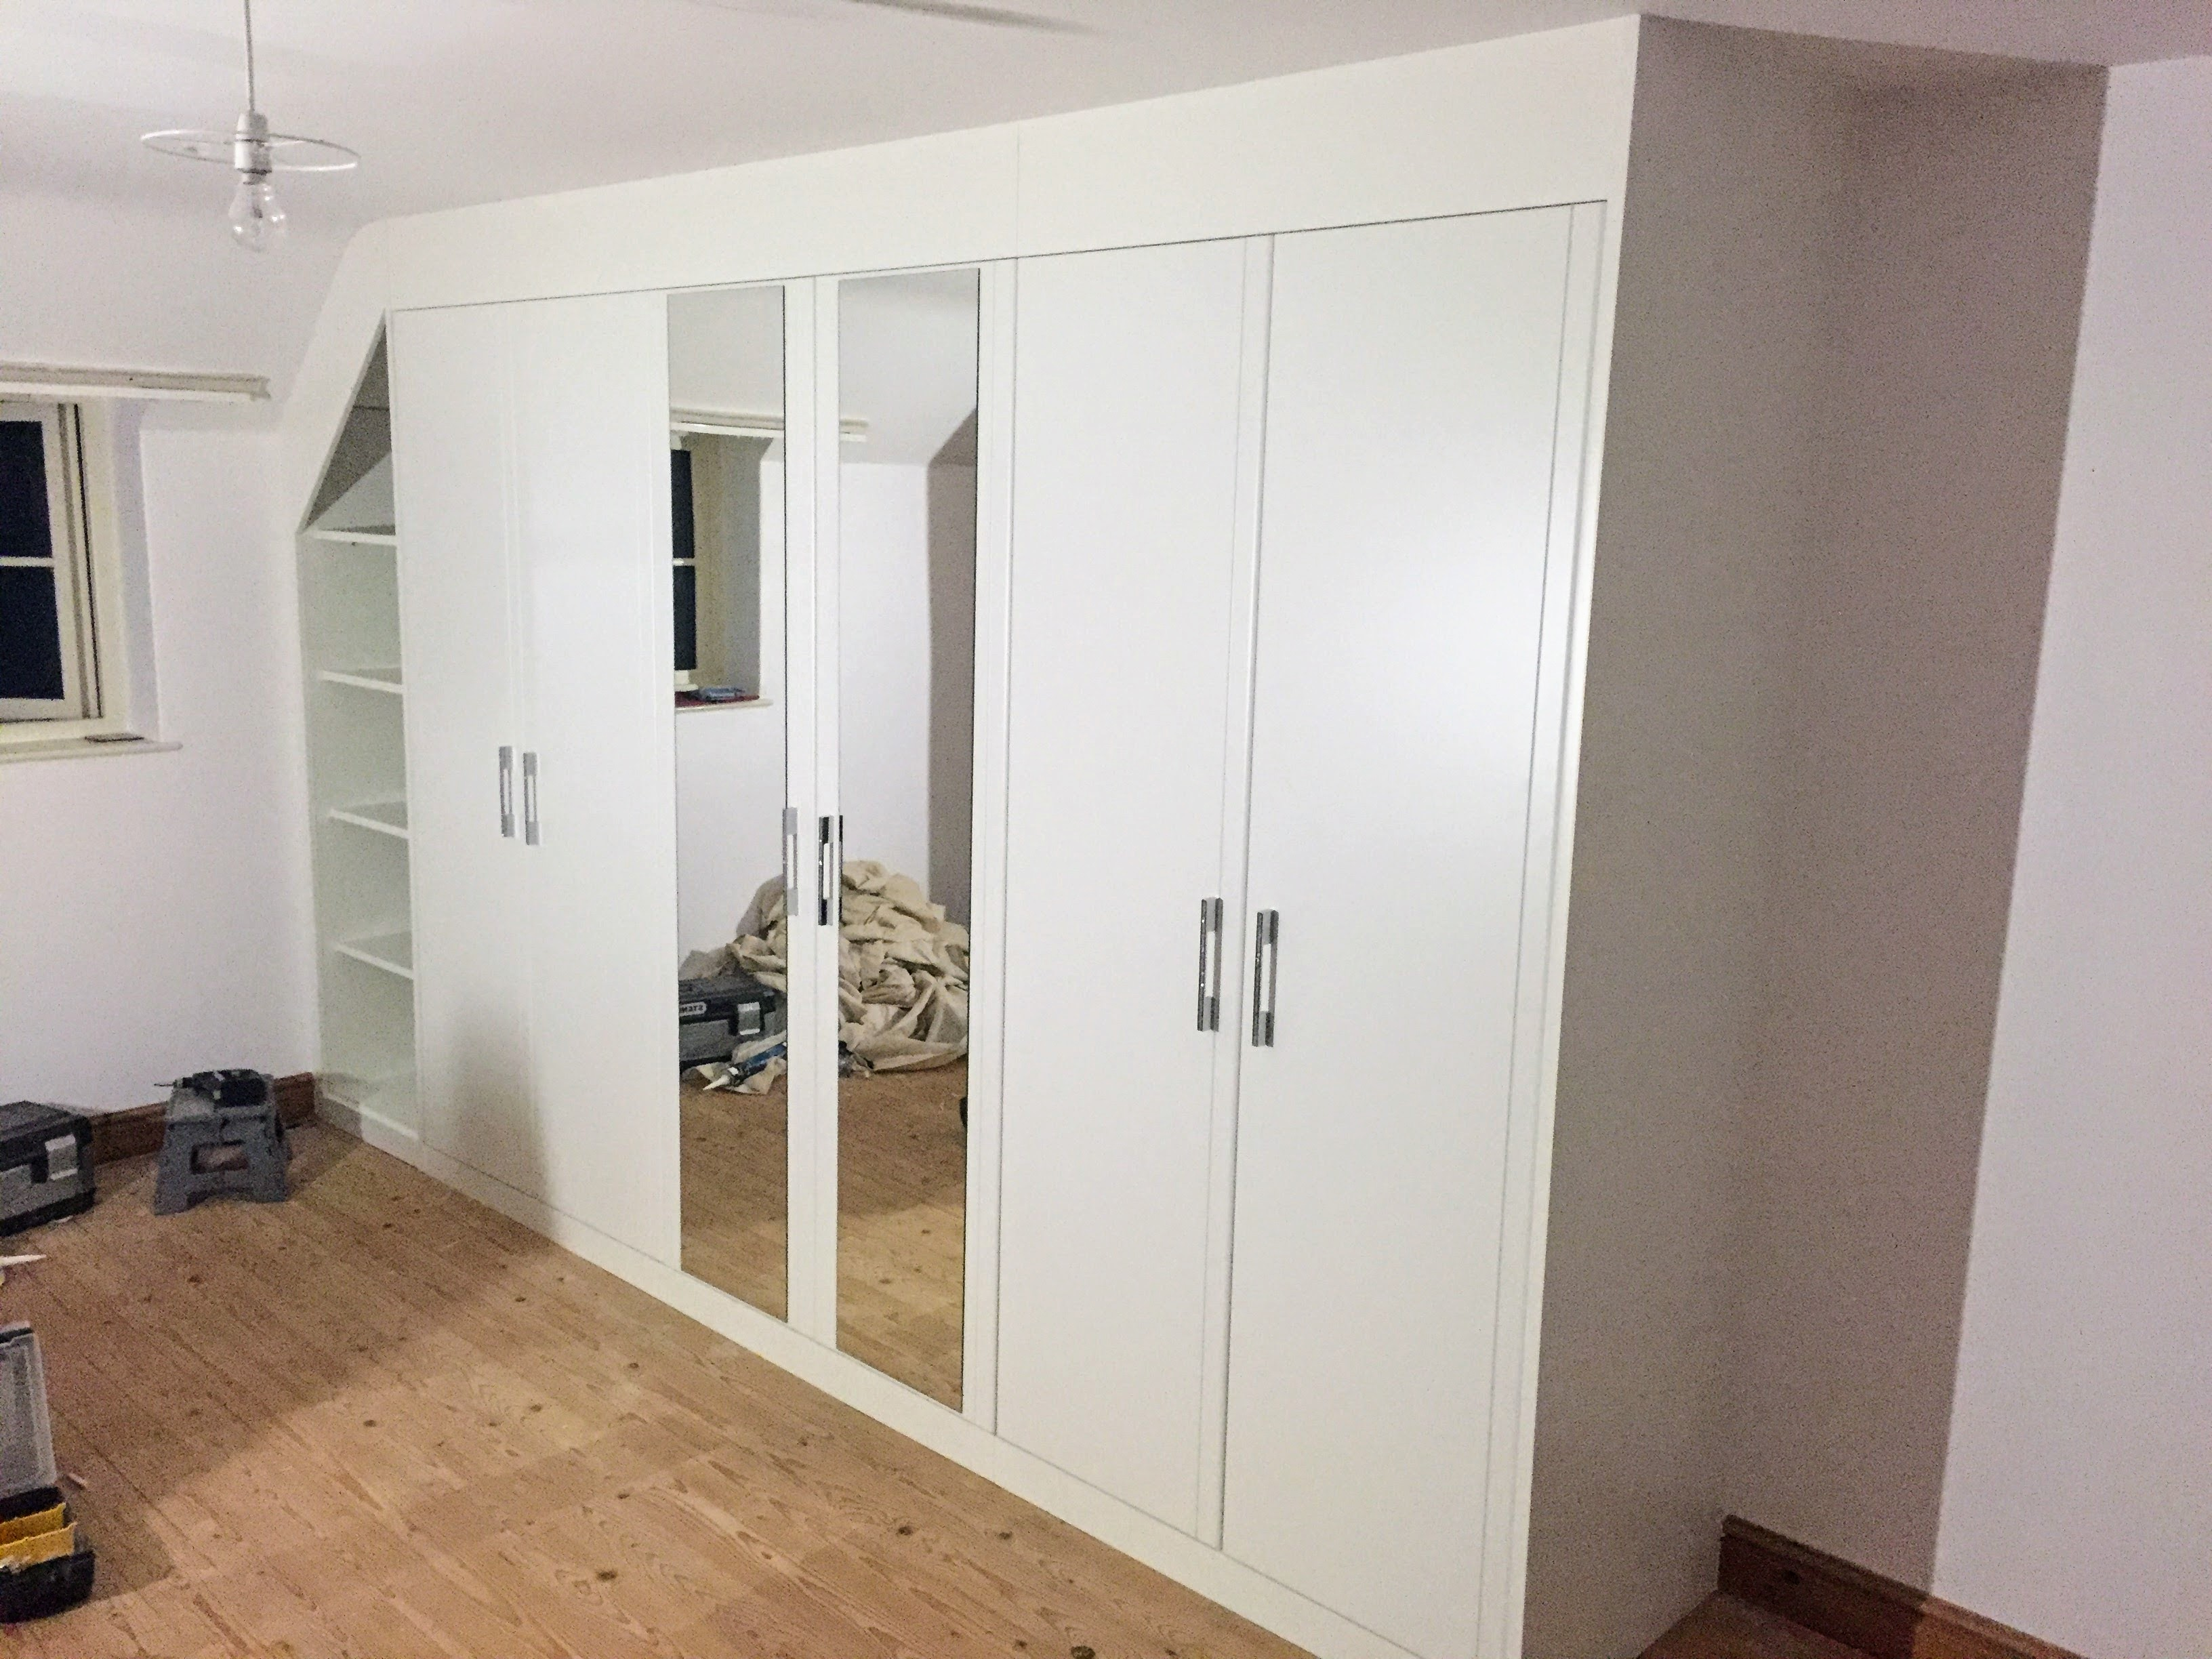 Wardrobe (alcove, mirror, shelves)